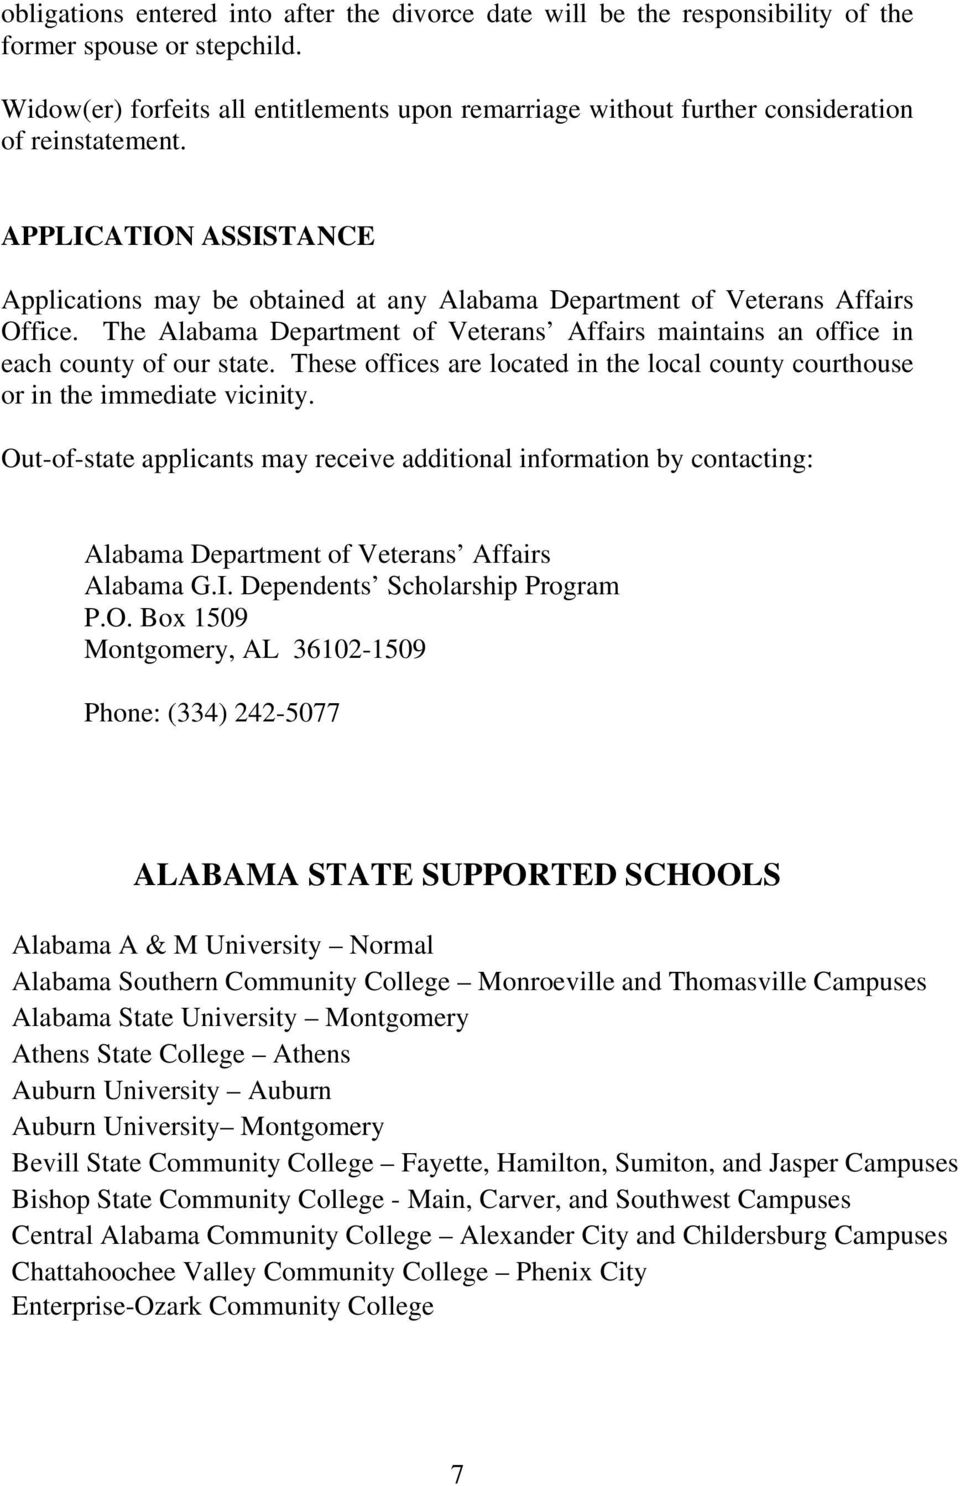 APPLICATION ASSISTANCE Applications may be obtained at any Alabama Department of Veterans Affairs Office. The Alabama Department of Veterans Affairs maintains an office in each county of our state.